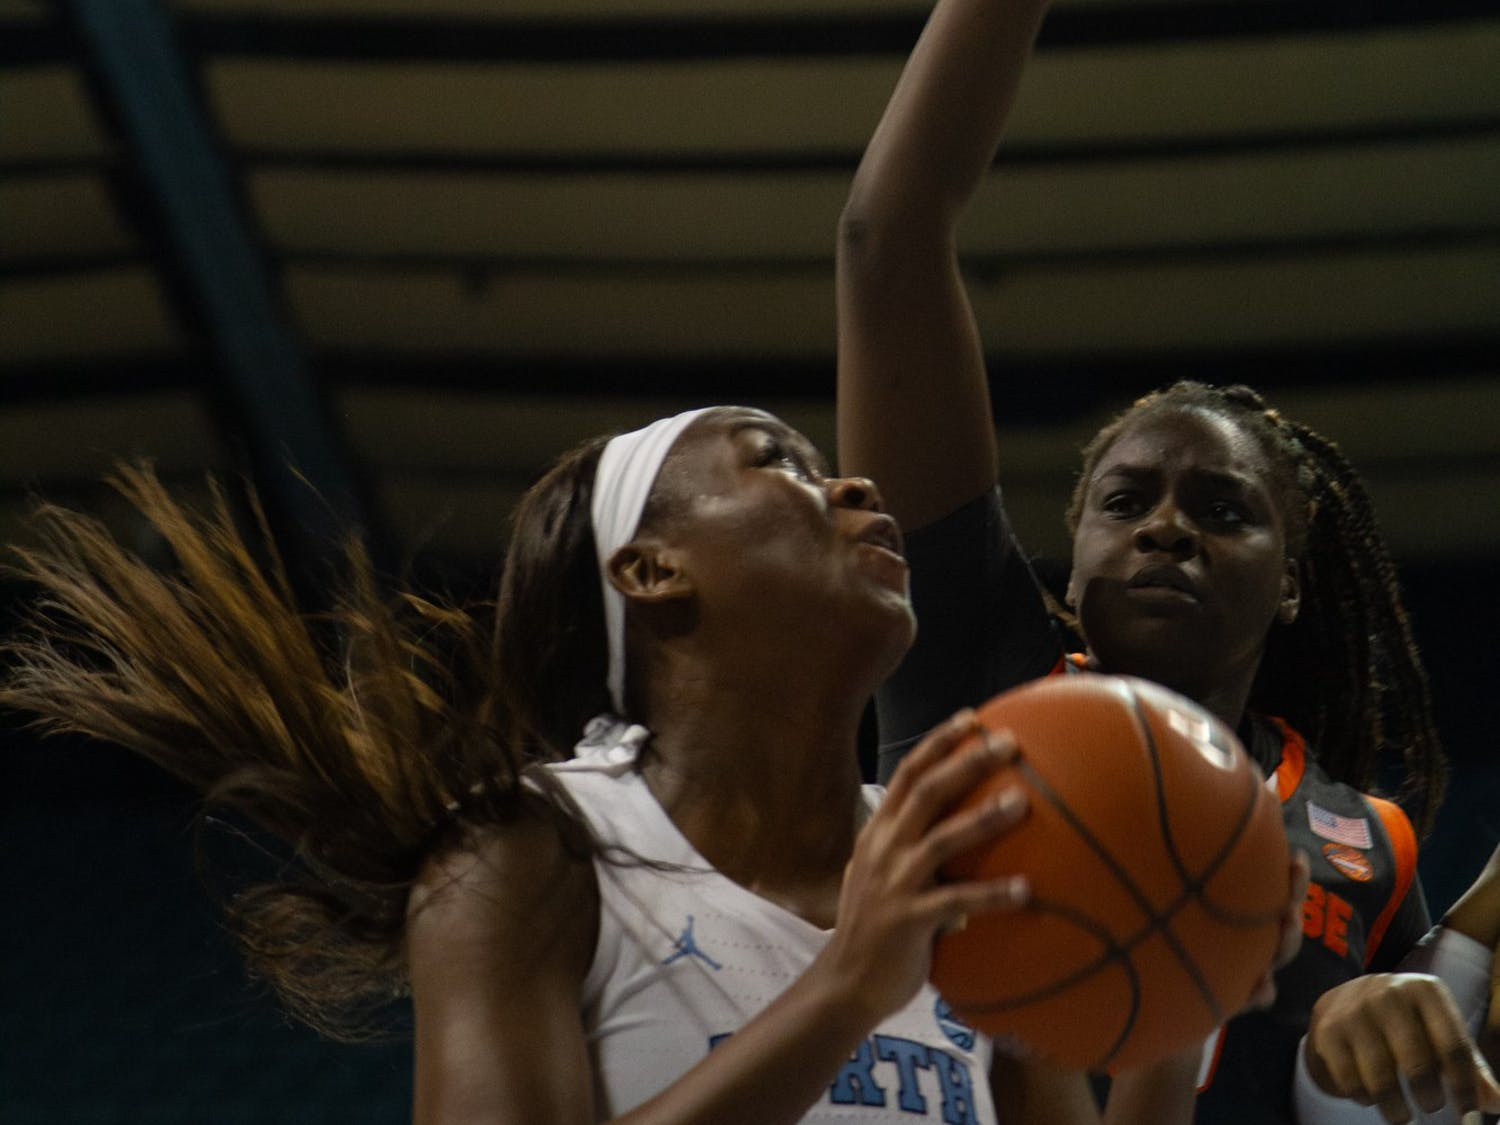 UNC first-year forward Malu Tshitenge (21) goes up for a shot while Syracuse attempts to block during a game in Carmichael Arena on Thursday, Feb. 13, 2020. The Orange beat the Tar Heels 74-56.